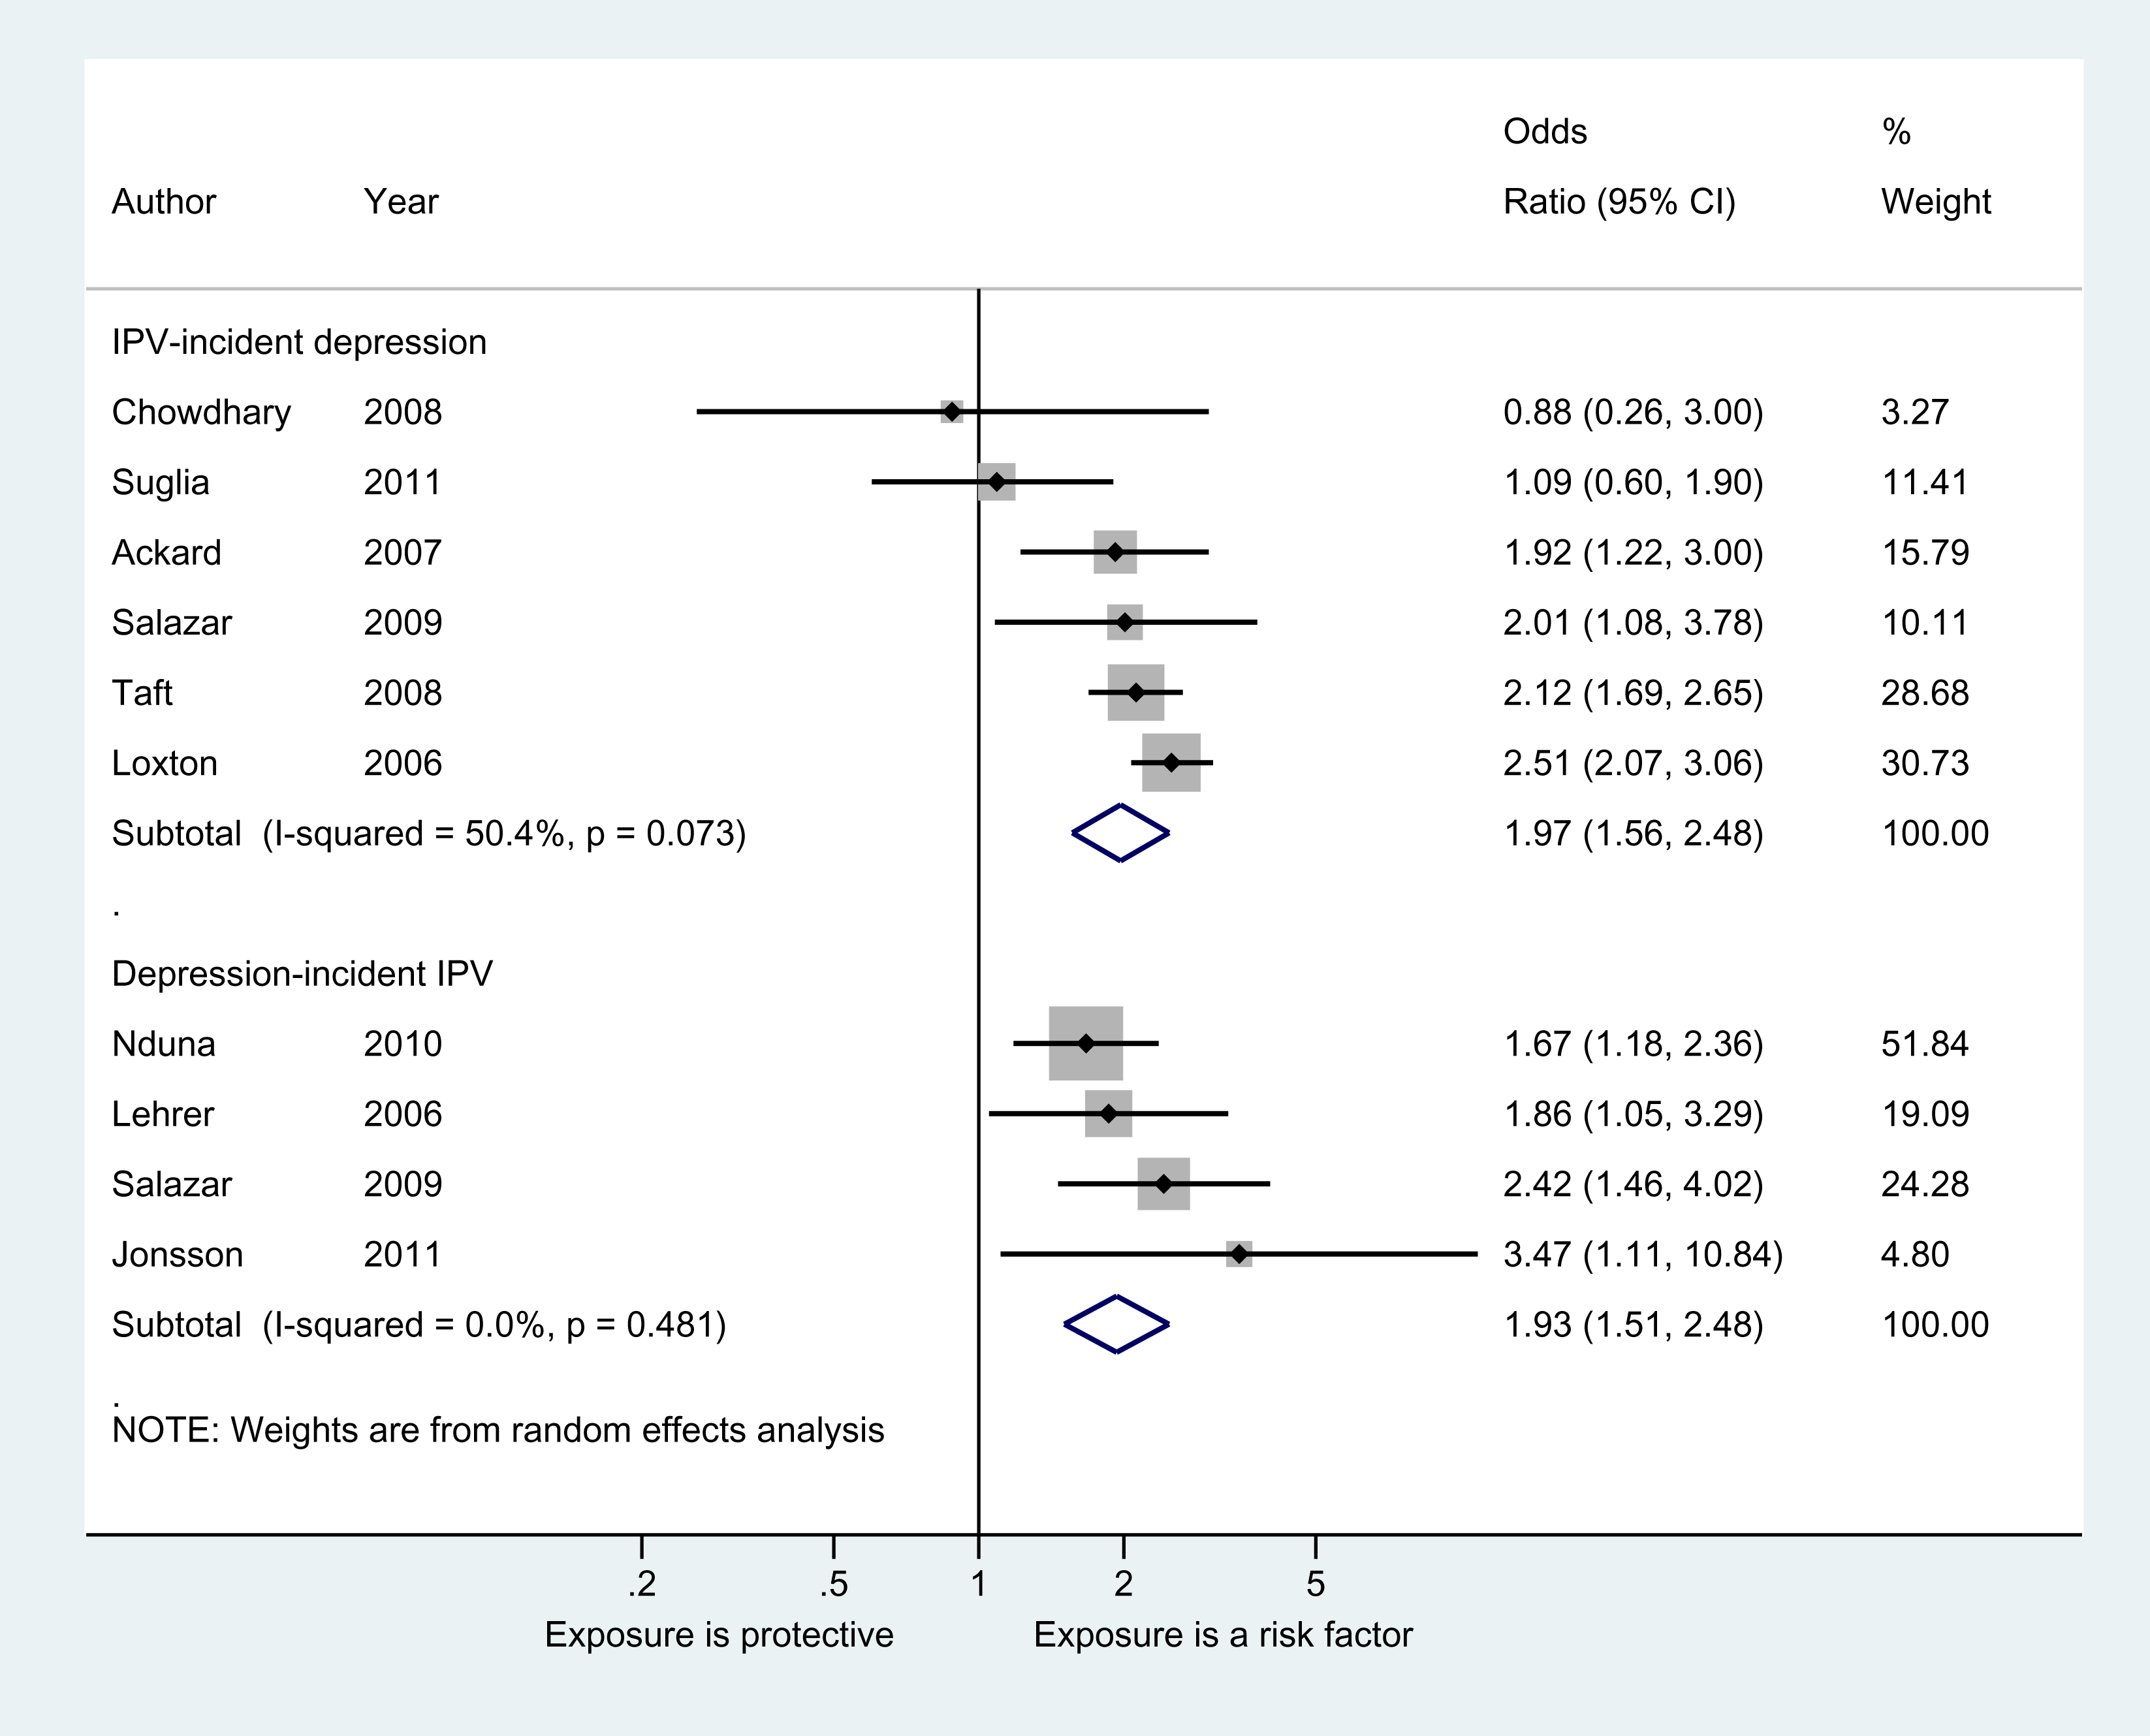 Meta-analyses of the association between IPV and depressive symptoms or disorder in women.